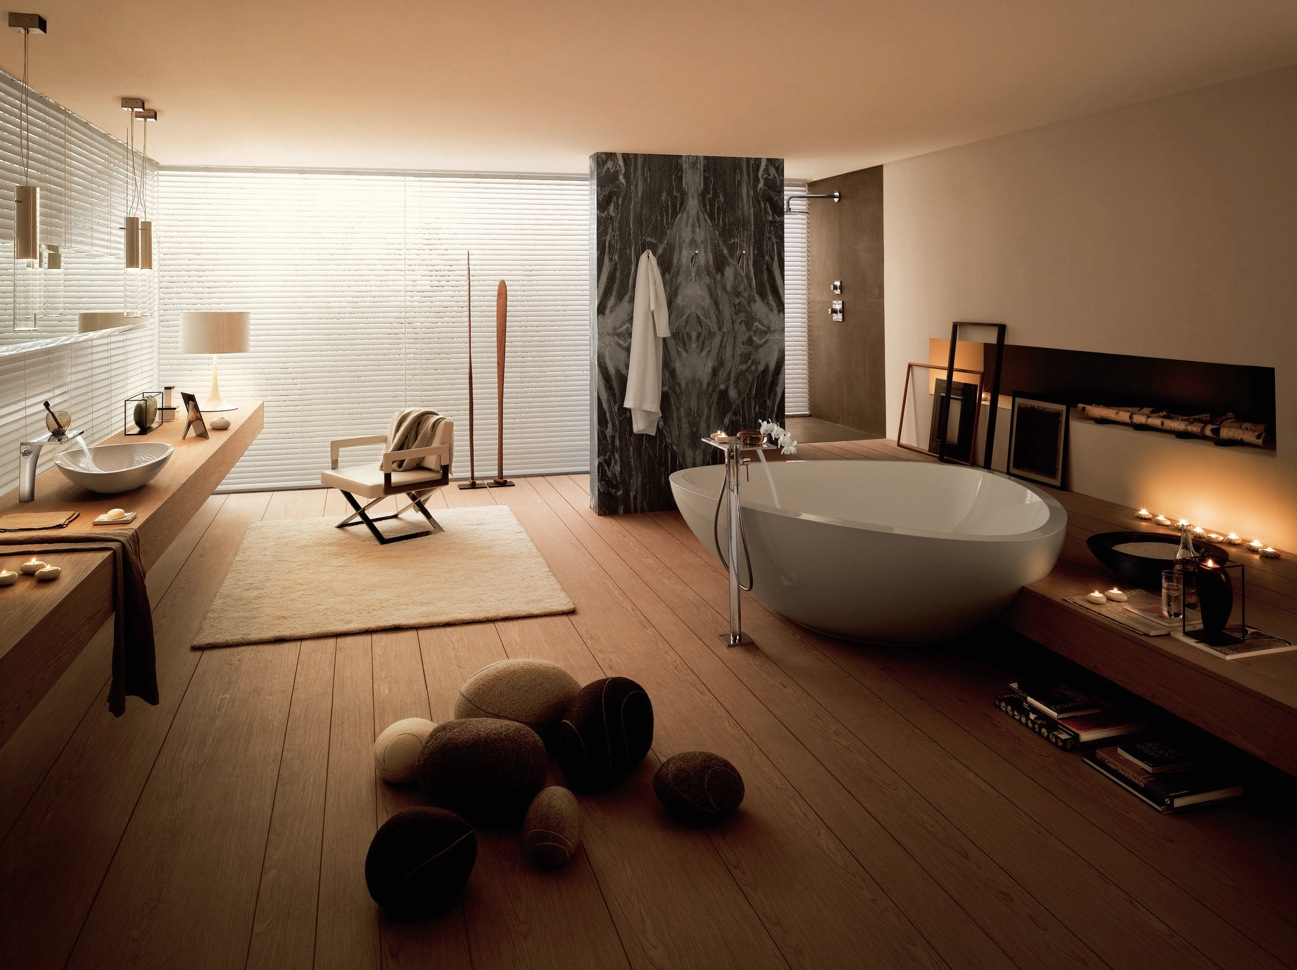 Bathroom-Design-with-Modern-Bath-Tub-Little-Stone-Chair-Fur-Carpet-Art-Door-Unique-Lamp-Laminated-Long-Table-and-Floor